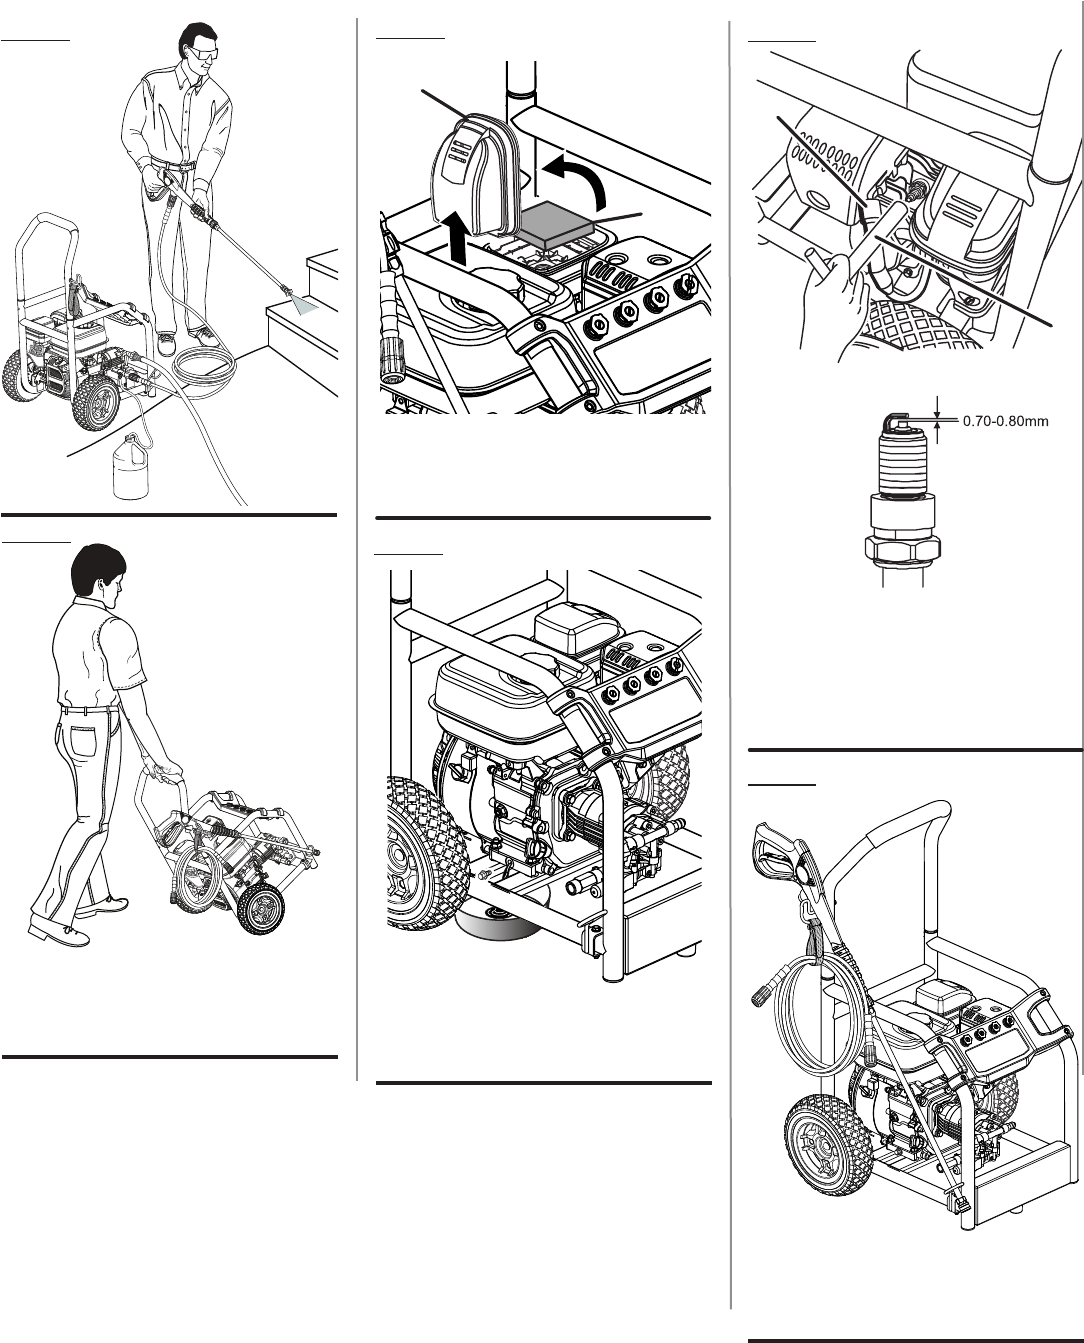 Page 5 of Homelite Pressure Washer UT80522 User Guide